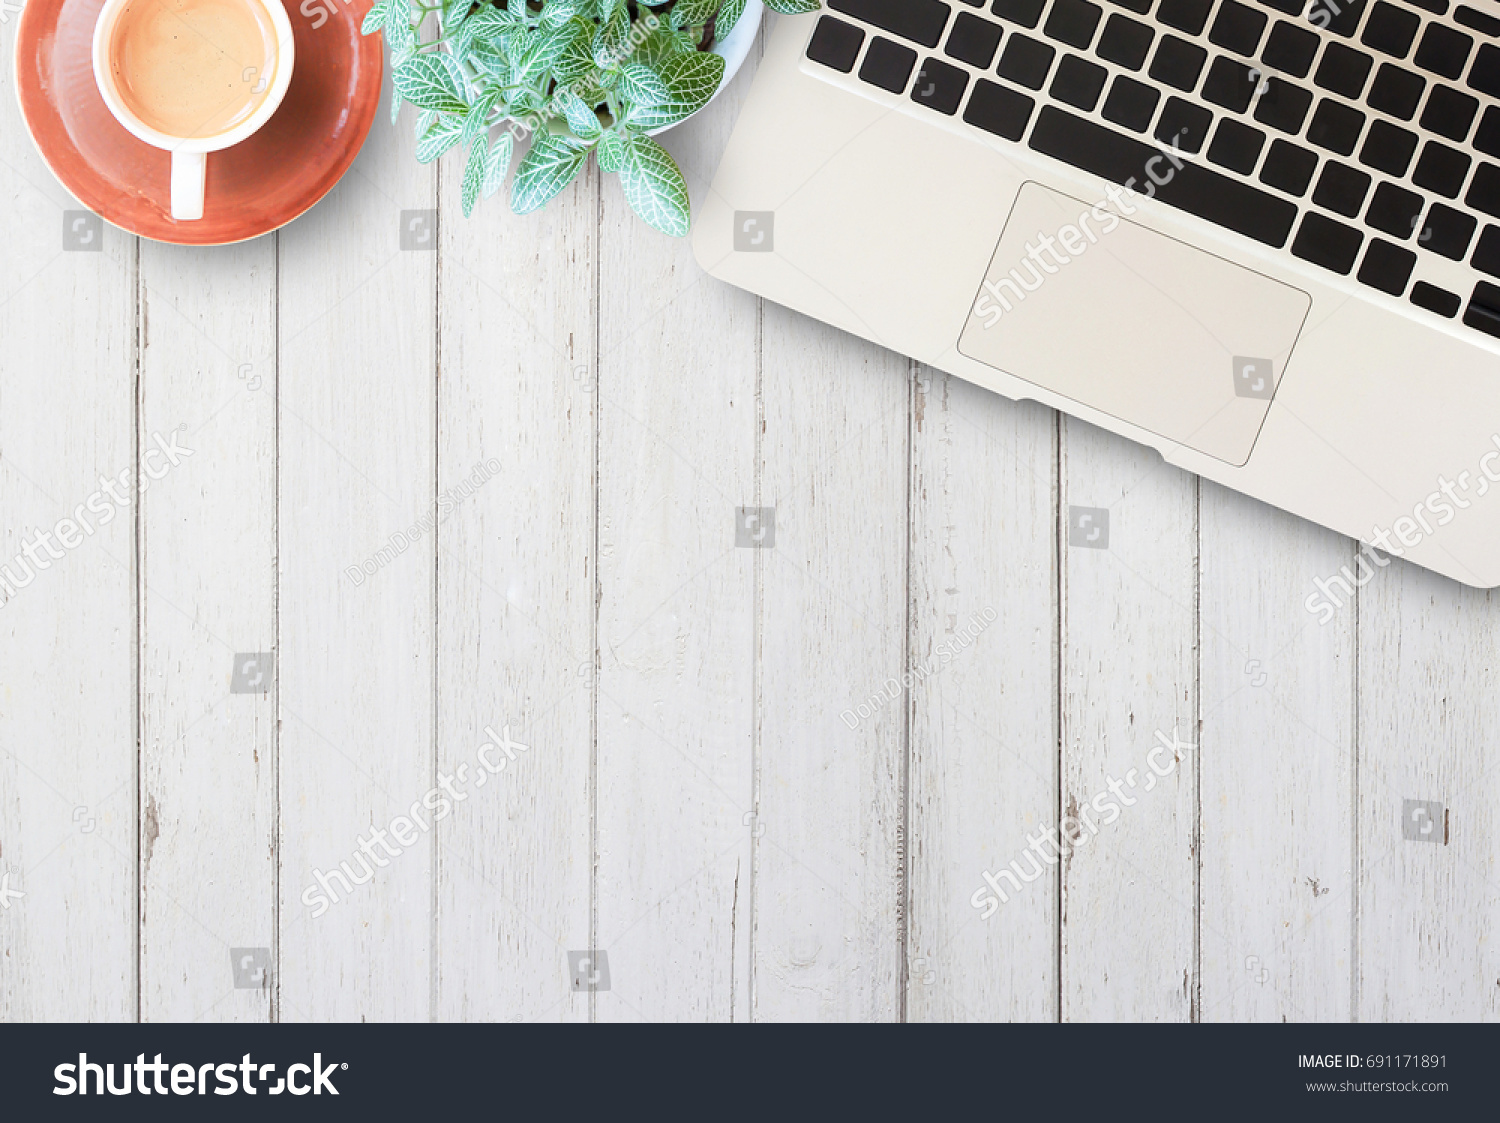 Flat Lay Home Business Desk Communication Stock Photo (Edit Now ...